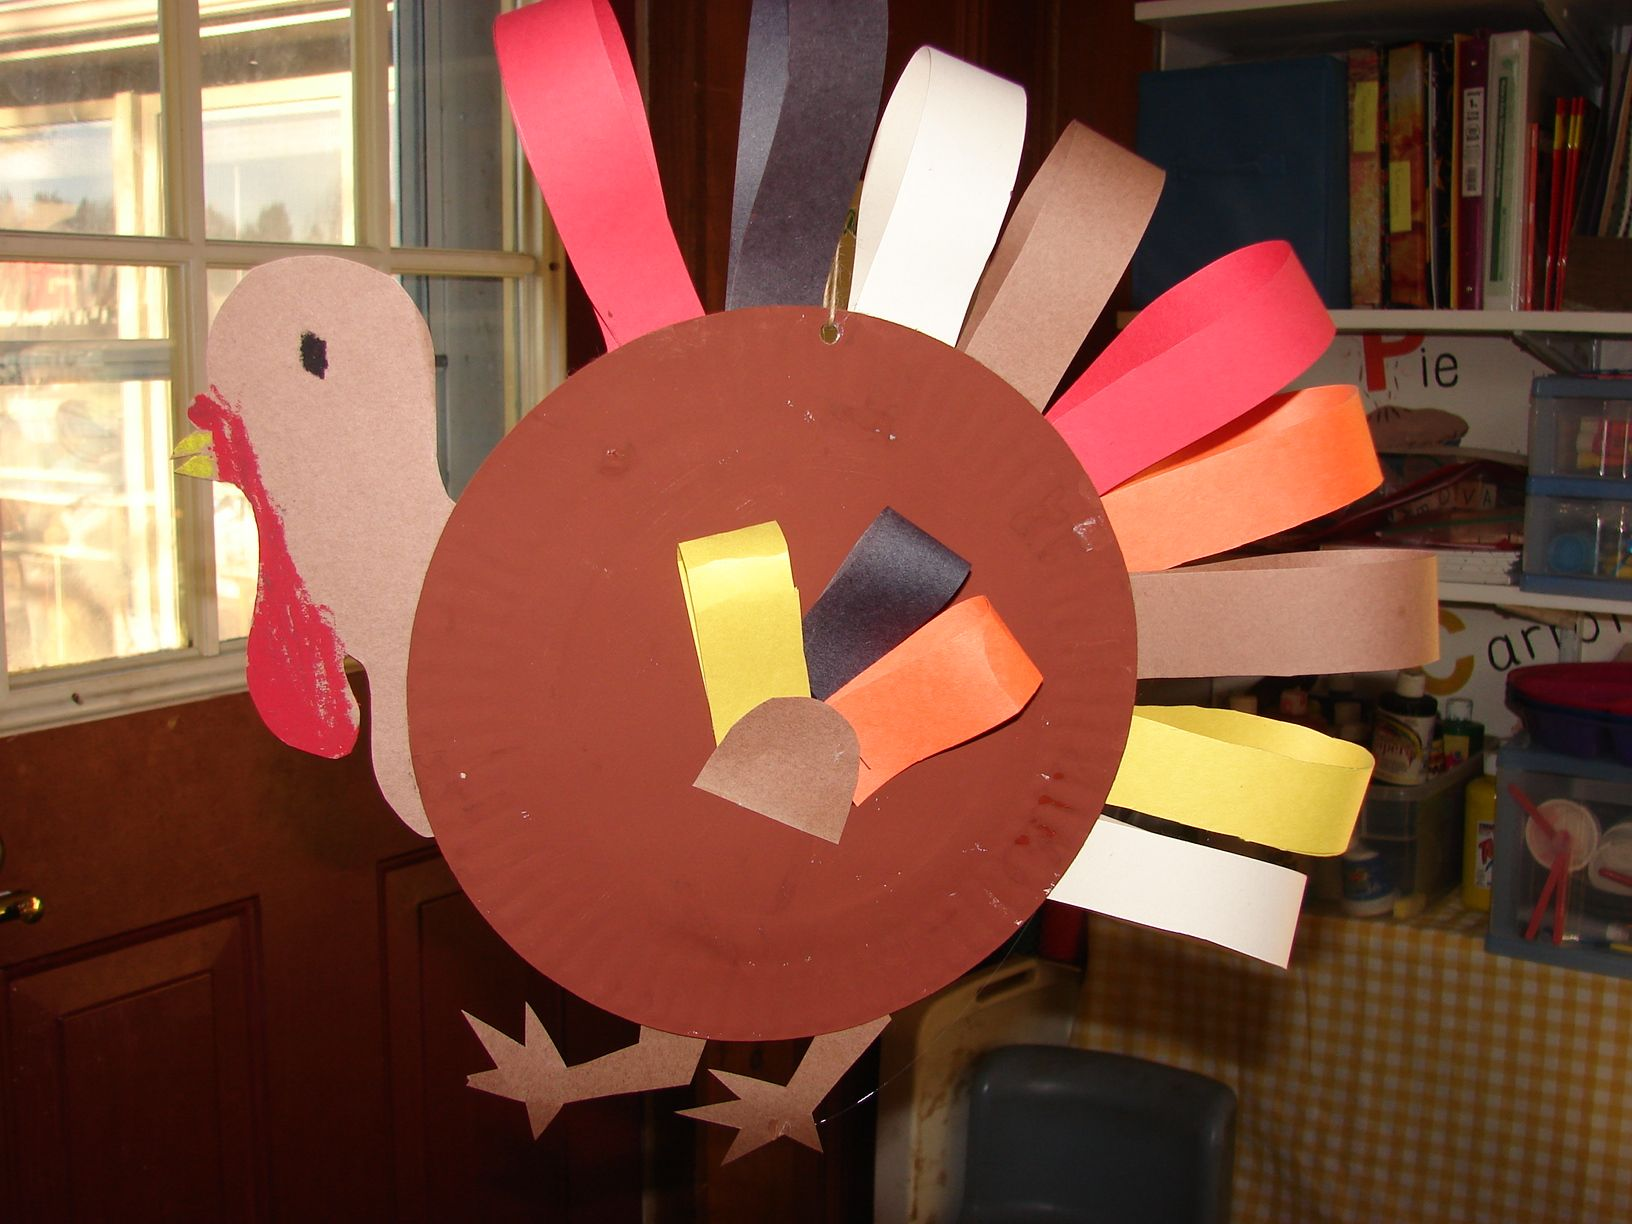 Arts u0026 Crafts with Country Fun - Paper Plate & Arts u0026 Crafts with Country Fun - Paper Plate | Thanksgiving ...